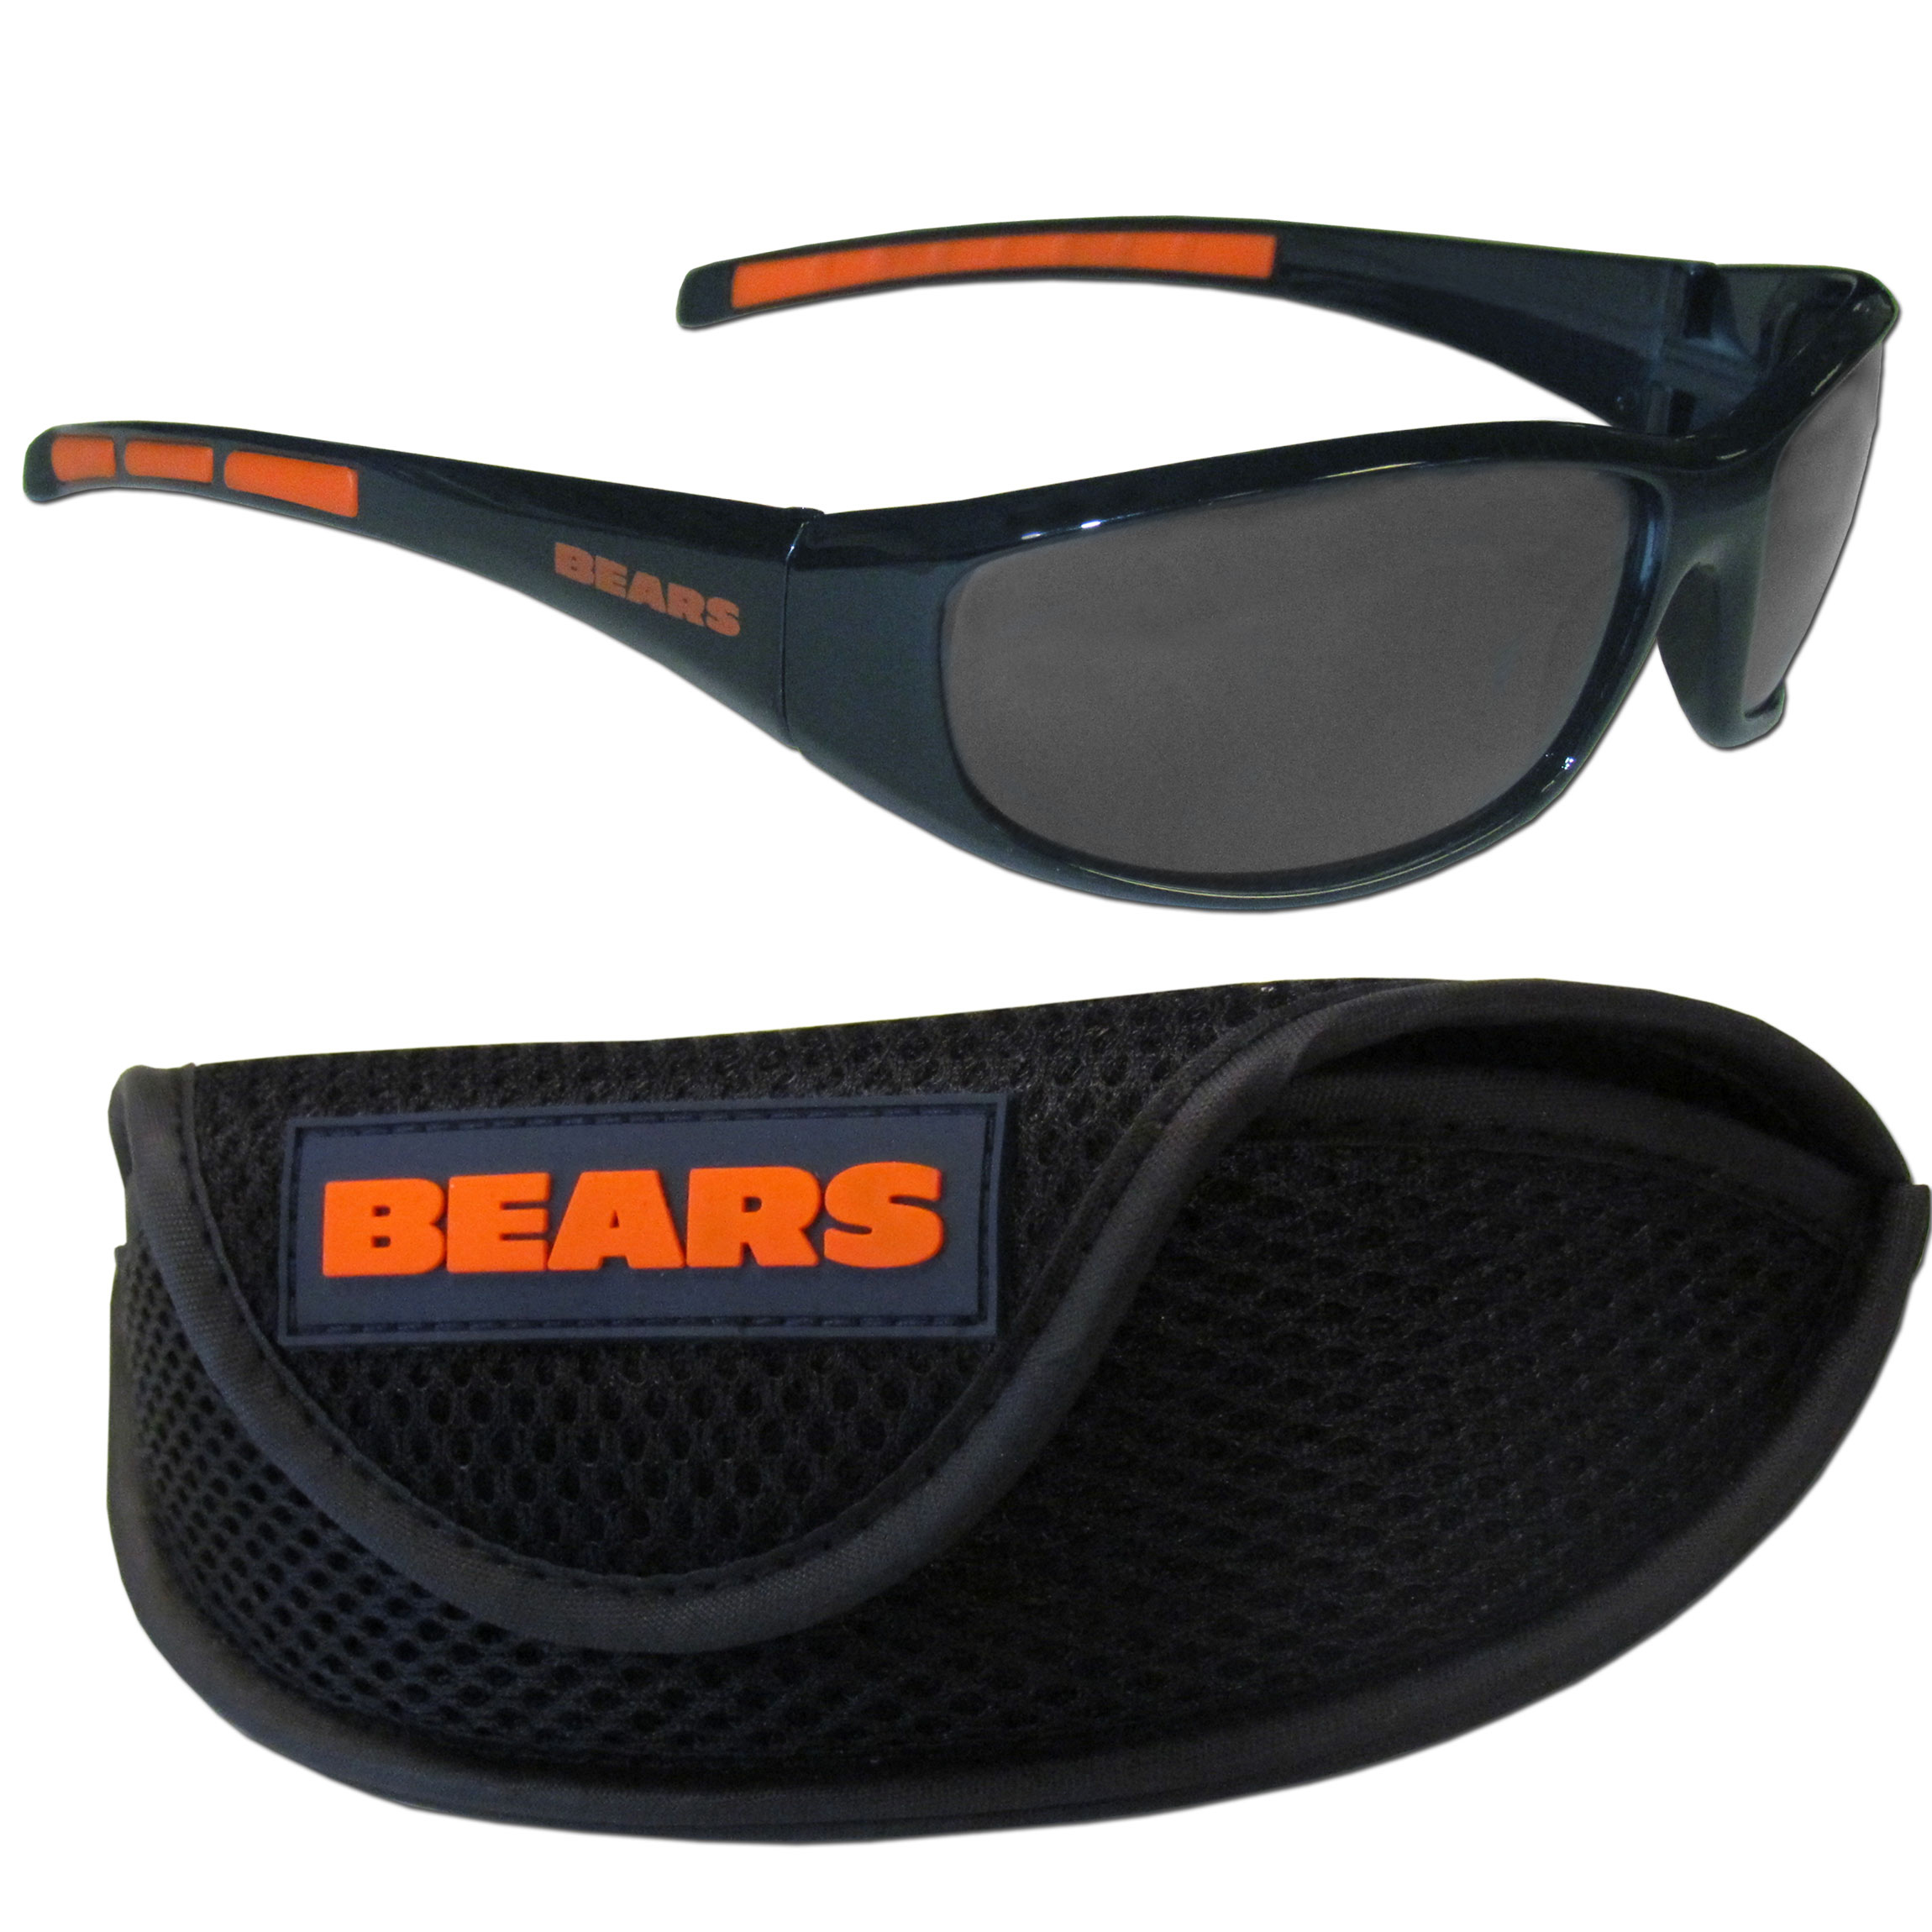 Chicago Bears Wrap Sunglass and Case Set - This great set includes a high quality pair of Chicago Bears wrap sunglasses and sport carrying case.